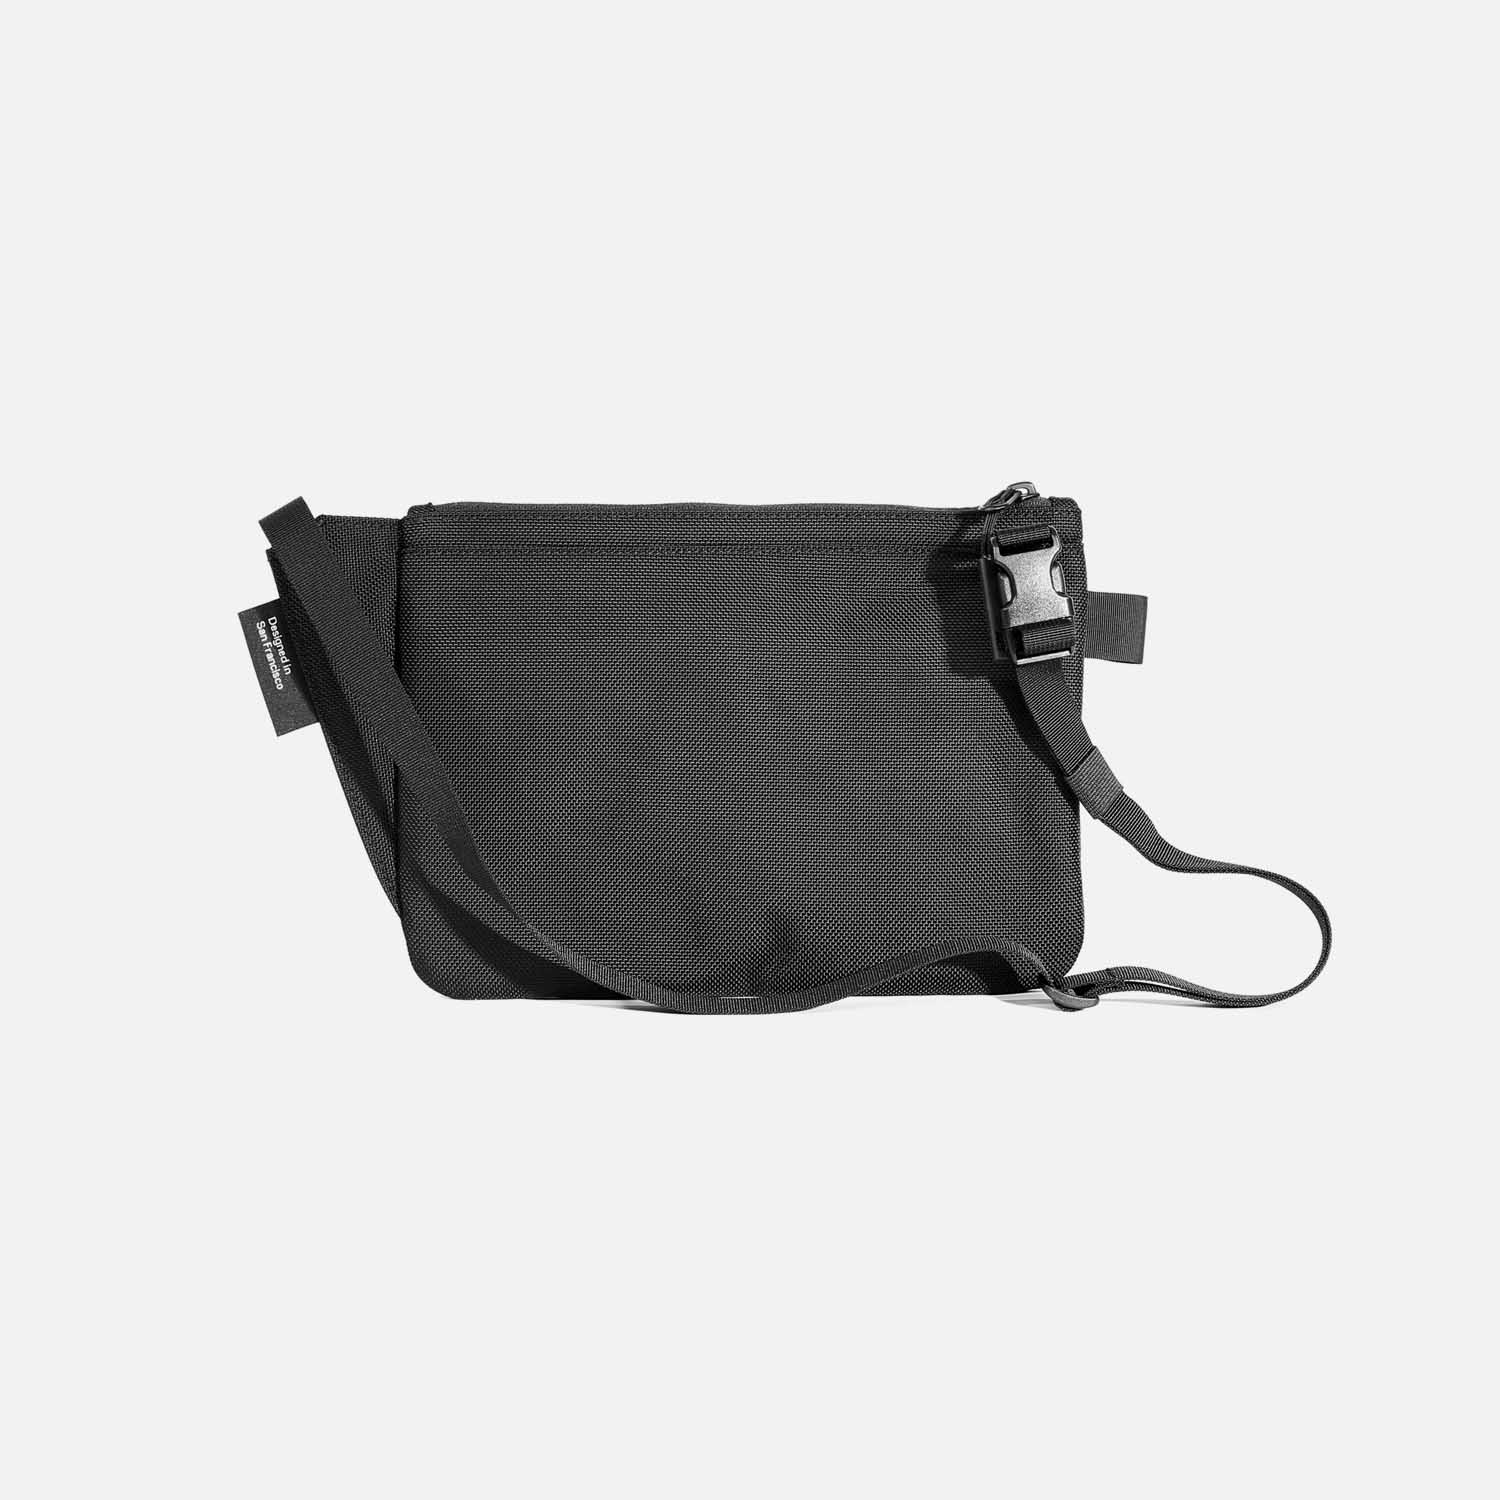 21019_slingpouch_black_back.jpg